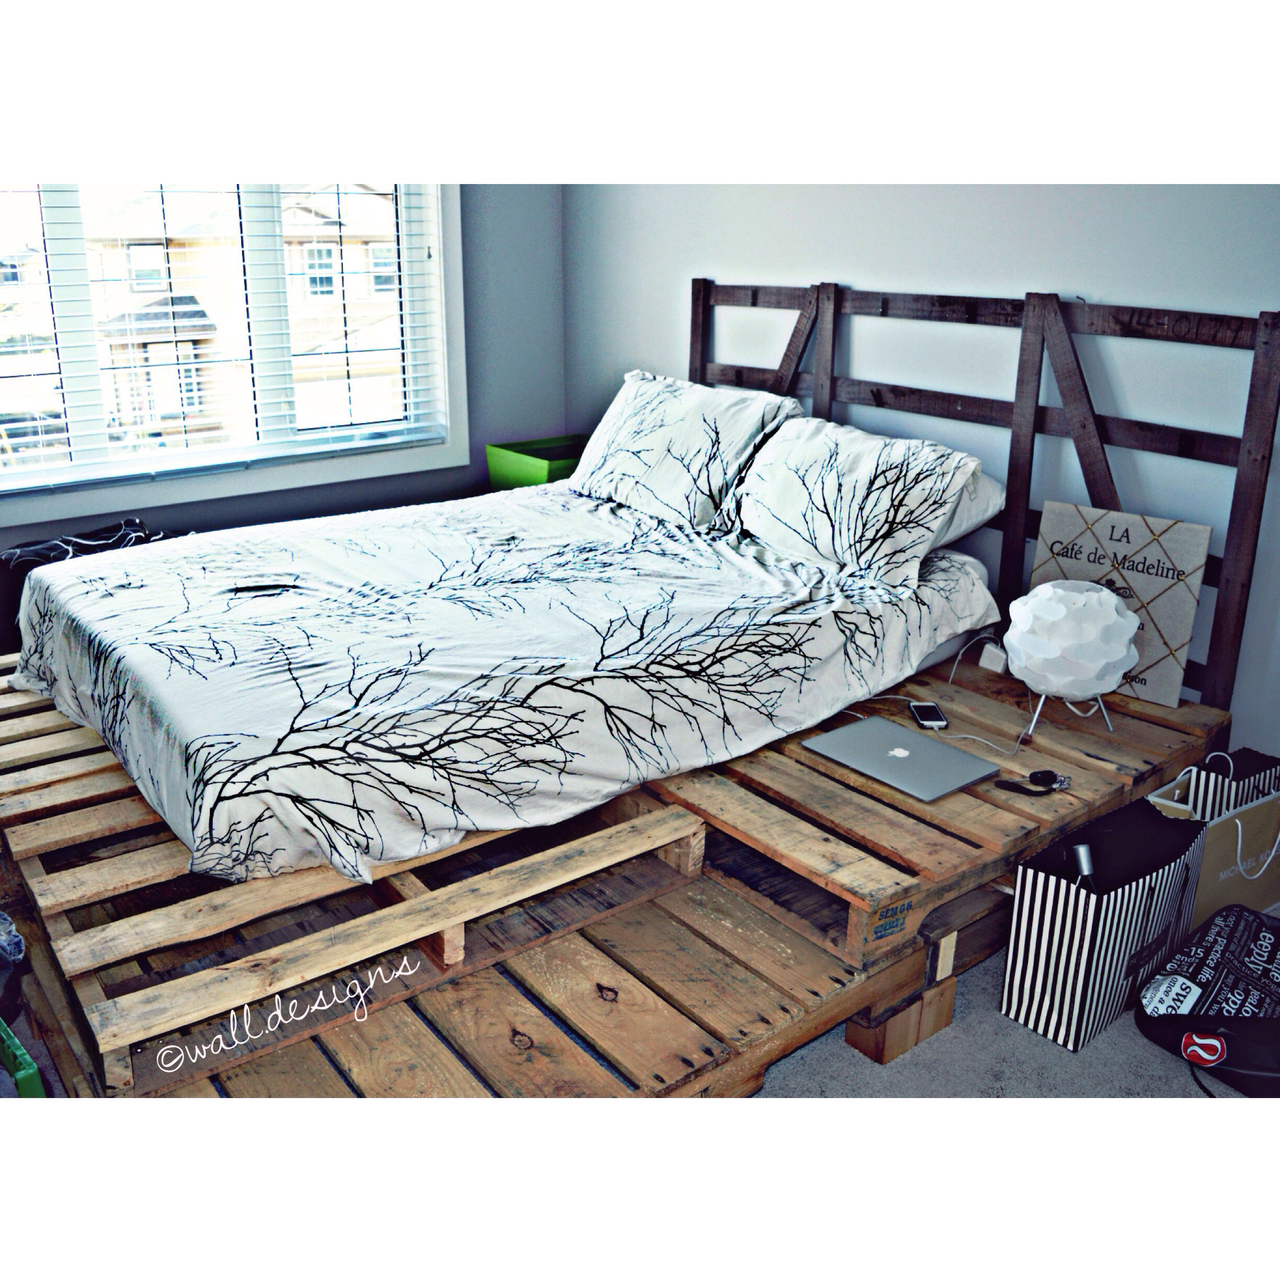 Modern Rustic Pallet Bed By Wall Designs On We Heart It